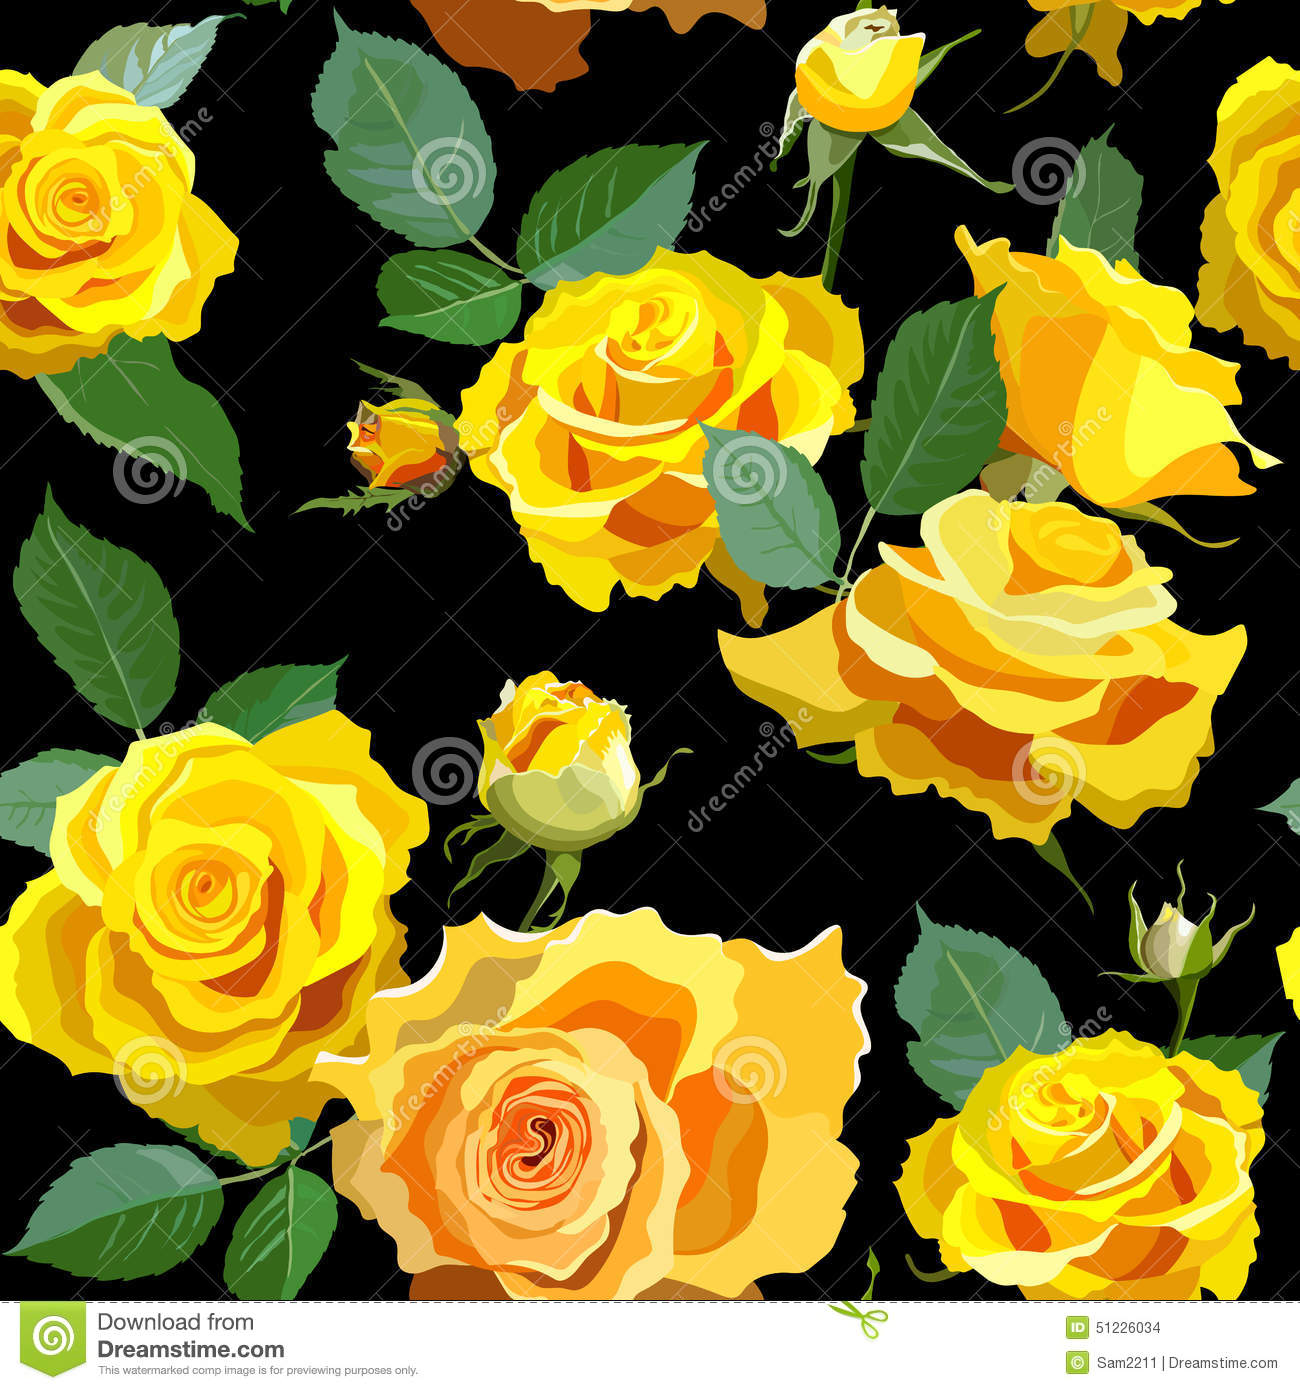 Seamless Floral Background With Yellow Roses Stock Vector